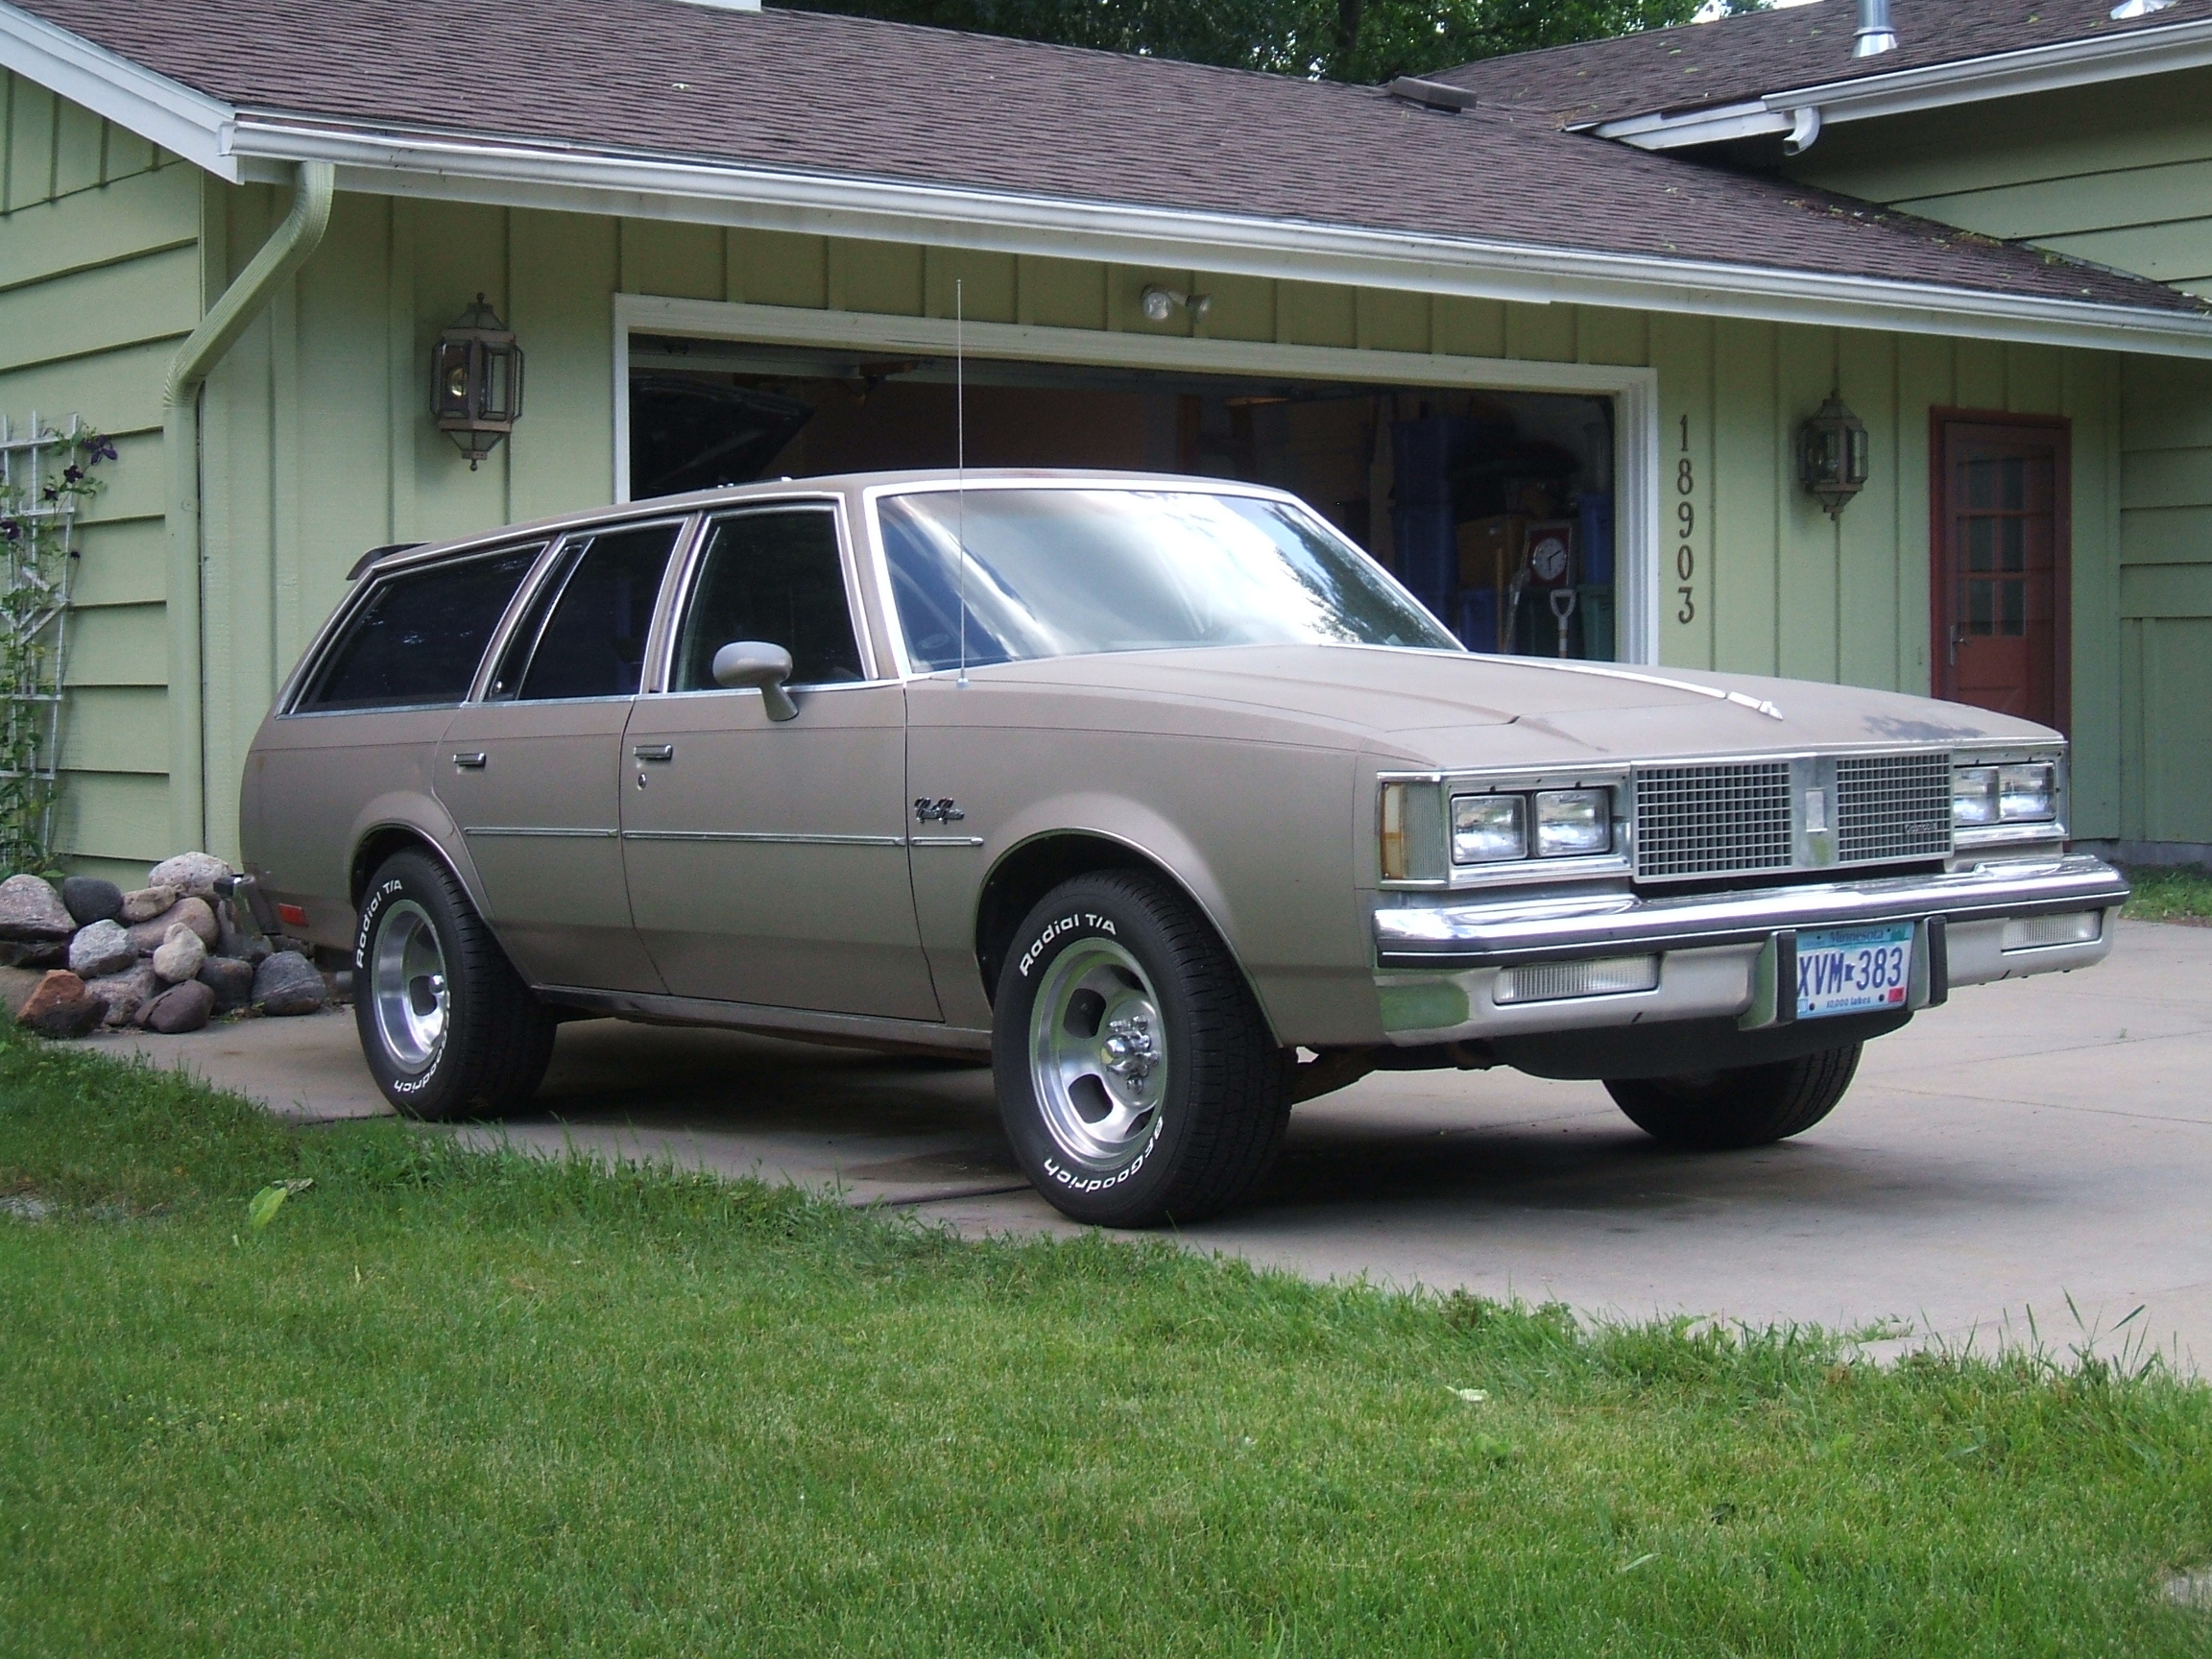 Blake442's 1983 Oldsmobile Cutlass Cruiser